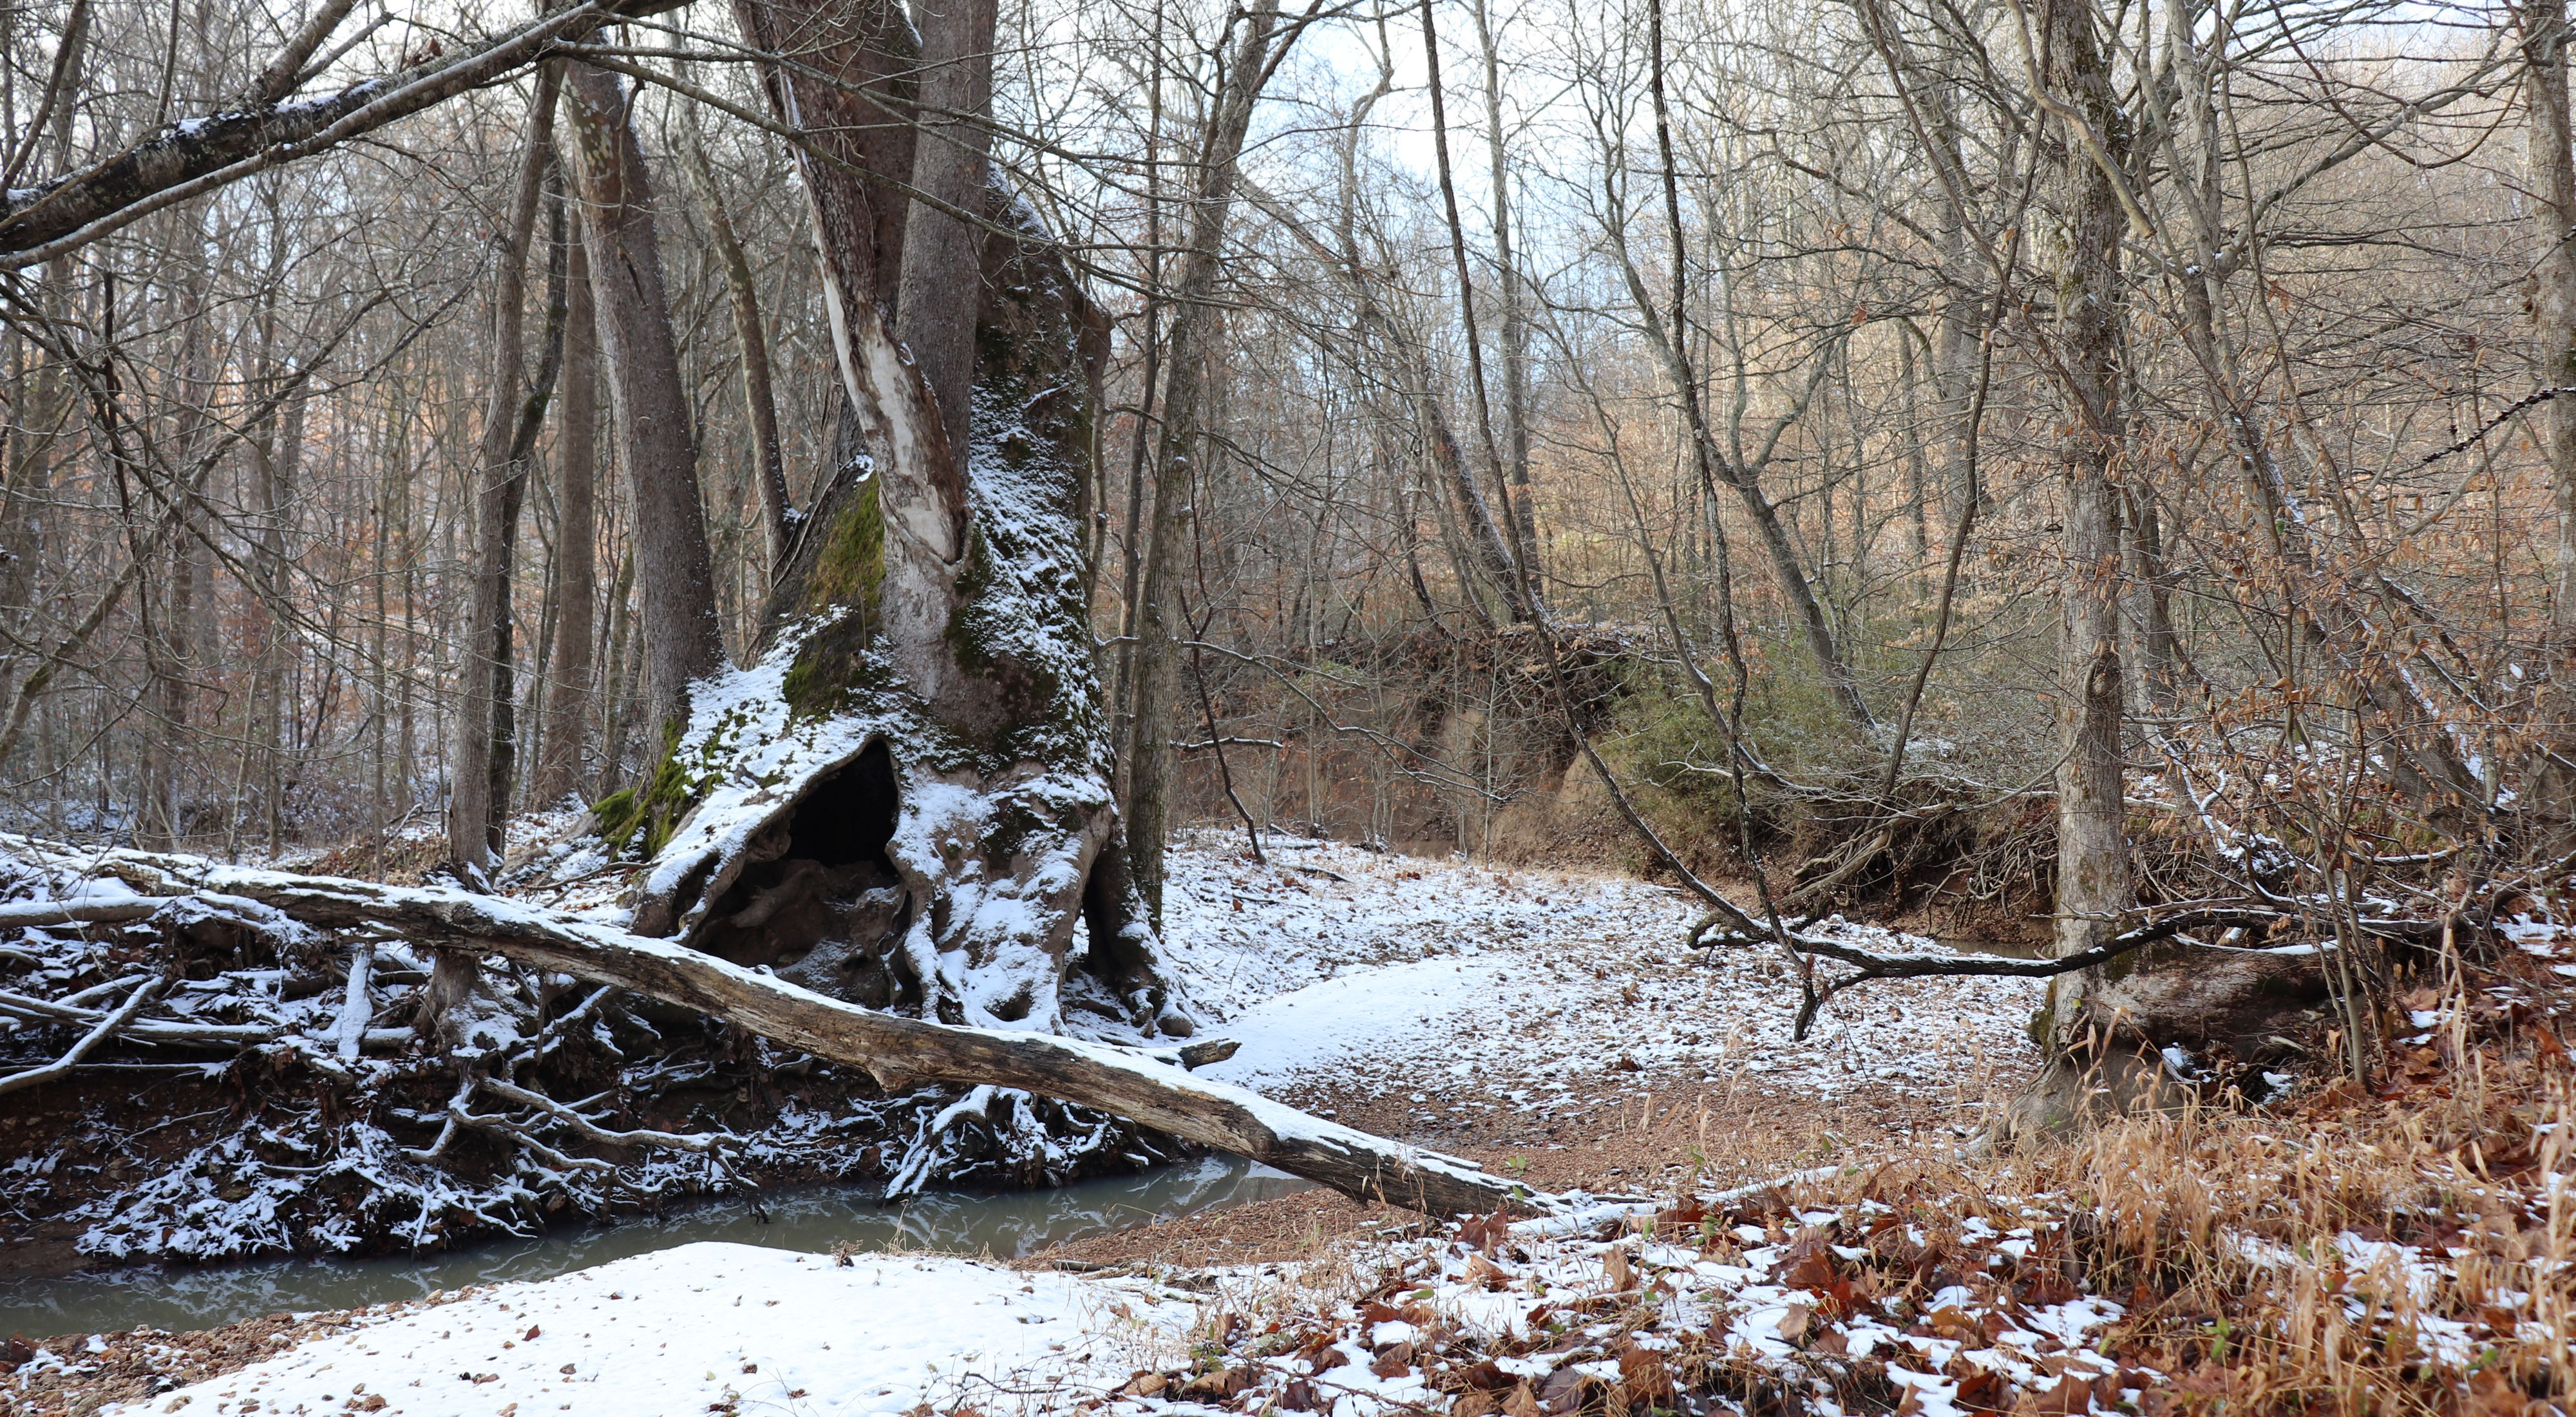 A creek runs through a forest covered by snow.